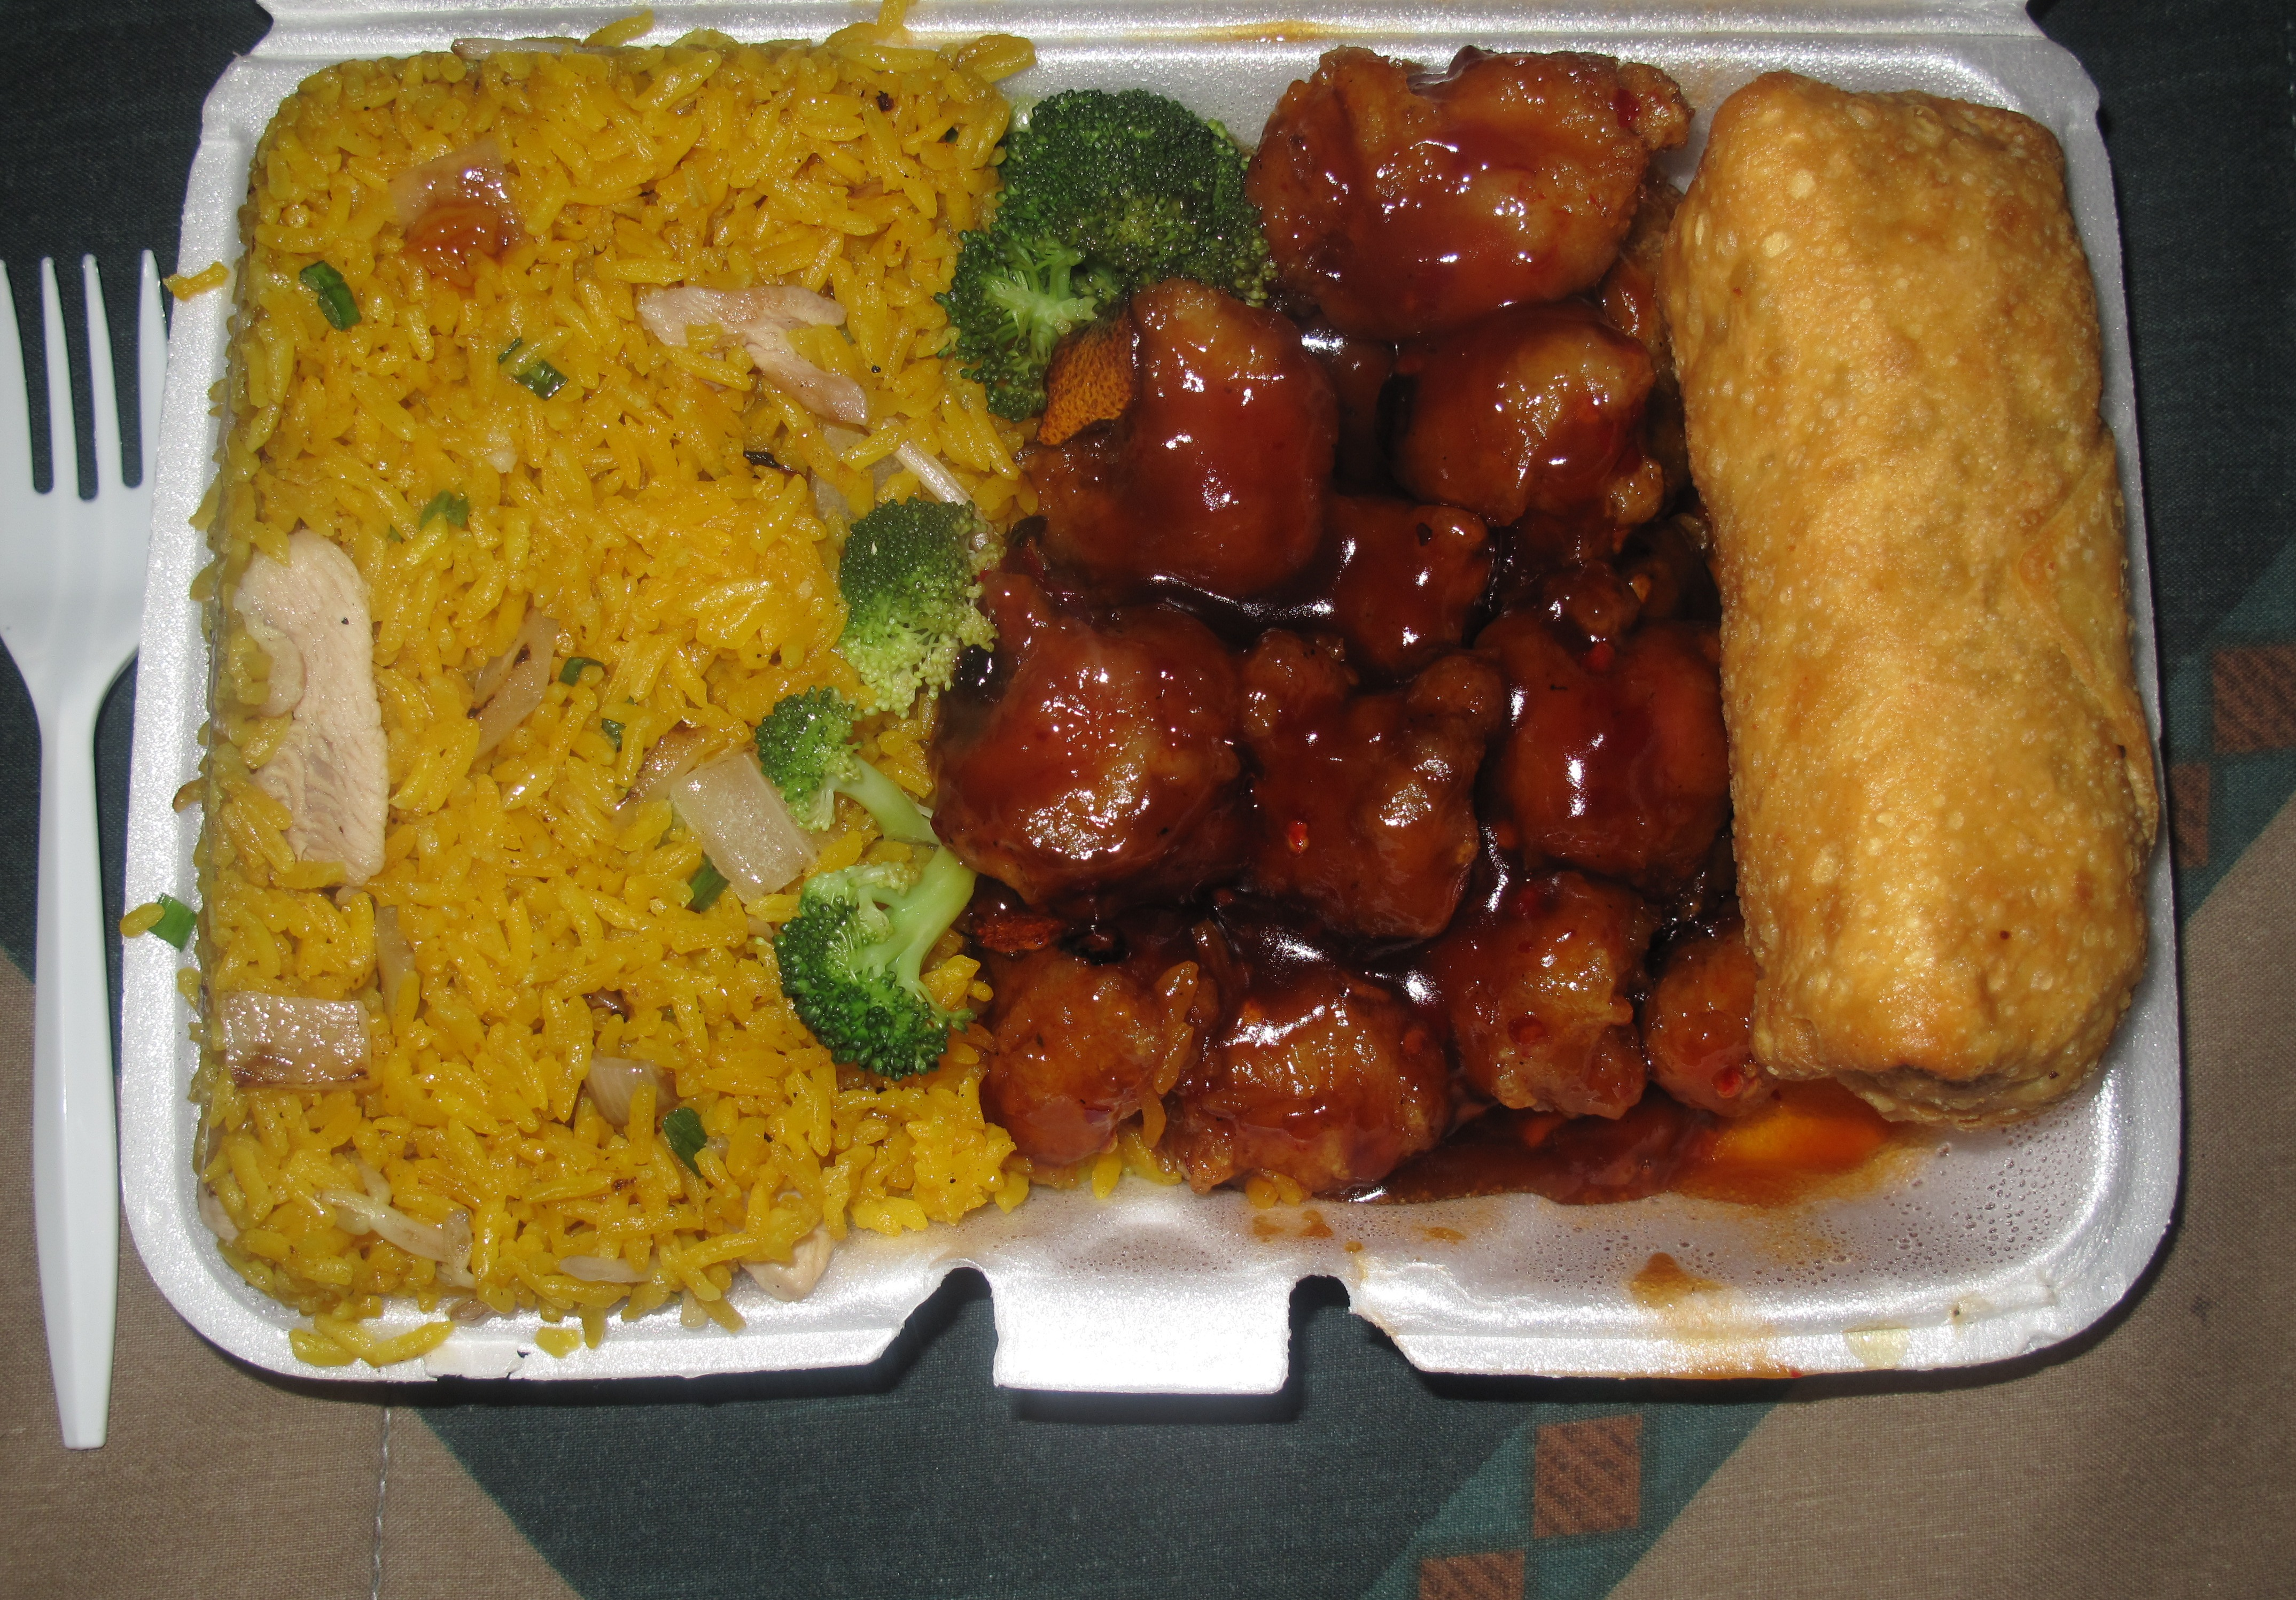 ... out as I had nothing else to prepare for dinner. I opted for The Orange Chicken Combination Plate with \u201cChicken\u201d Fried Rice instead of Pork Fried Rice. & Dinner | THEJNSREPORT